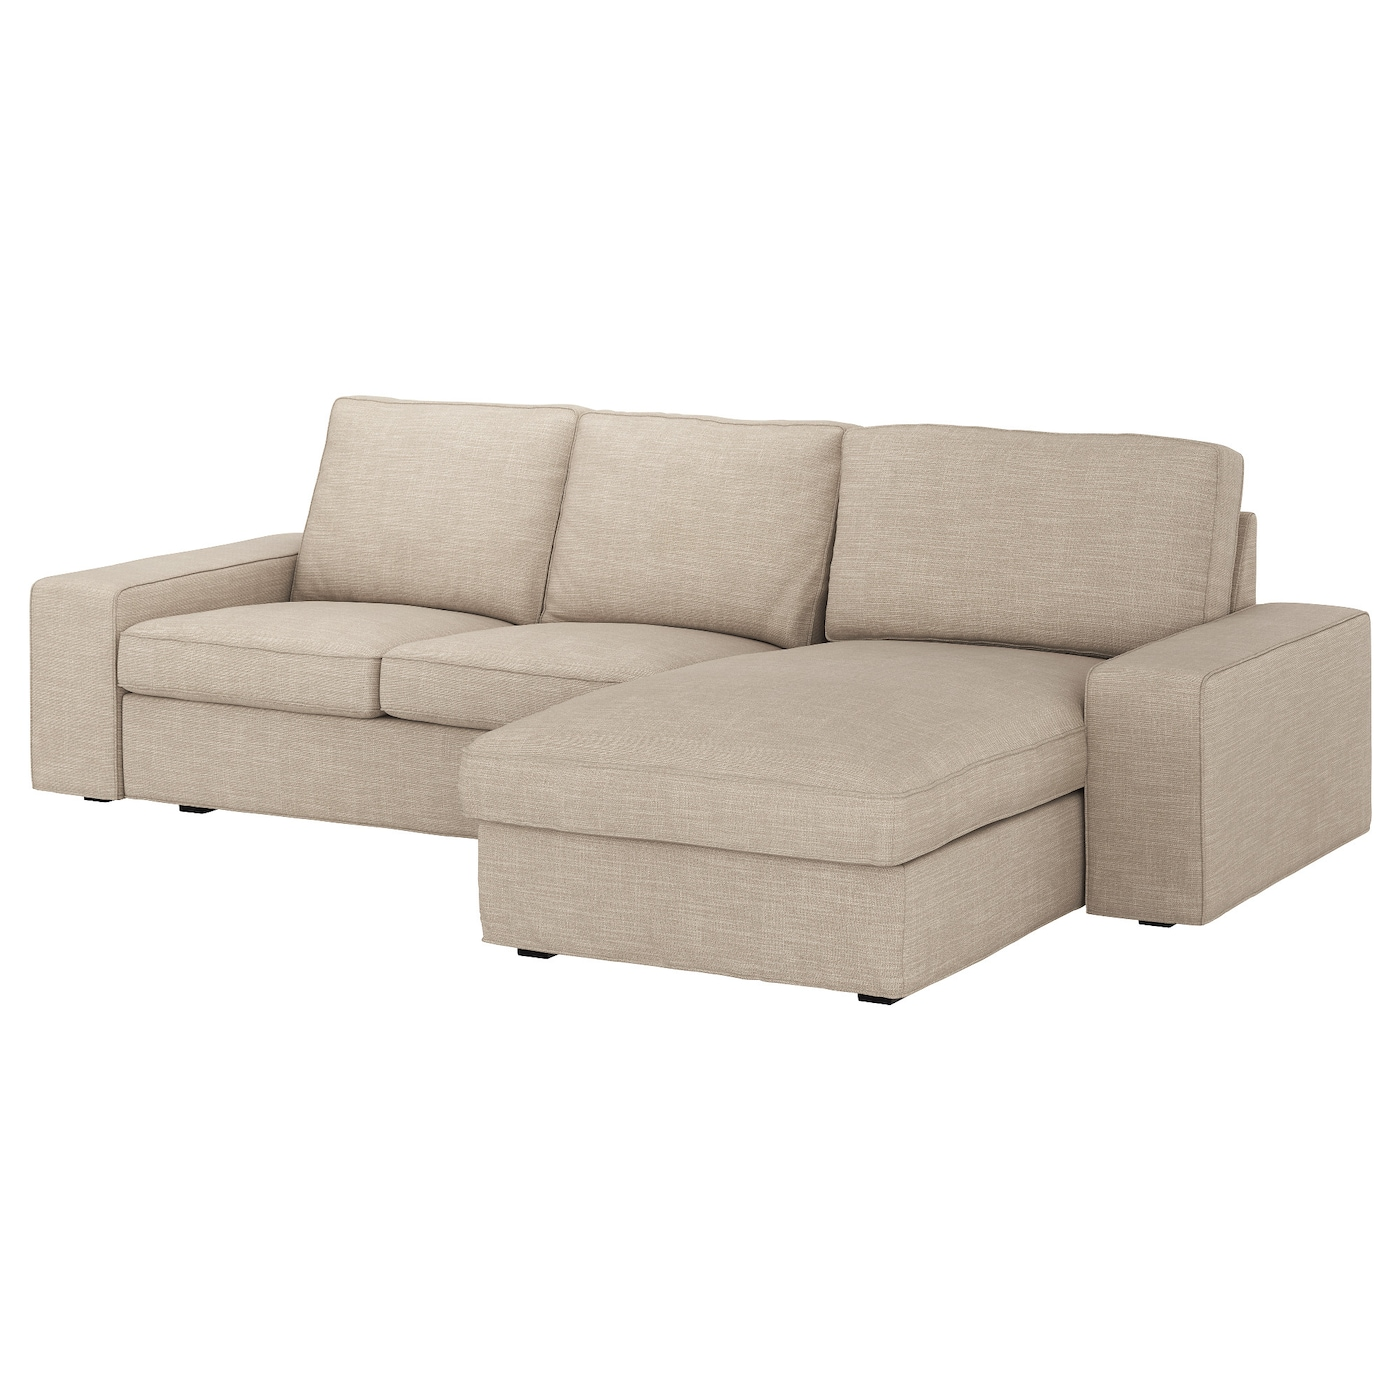 Kivik 3 seat sofa with chaise longue hillared beige ikea for Chaise longue ikea